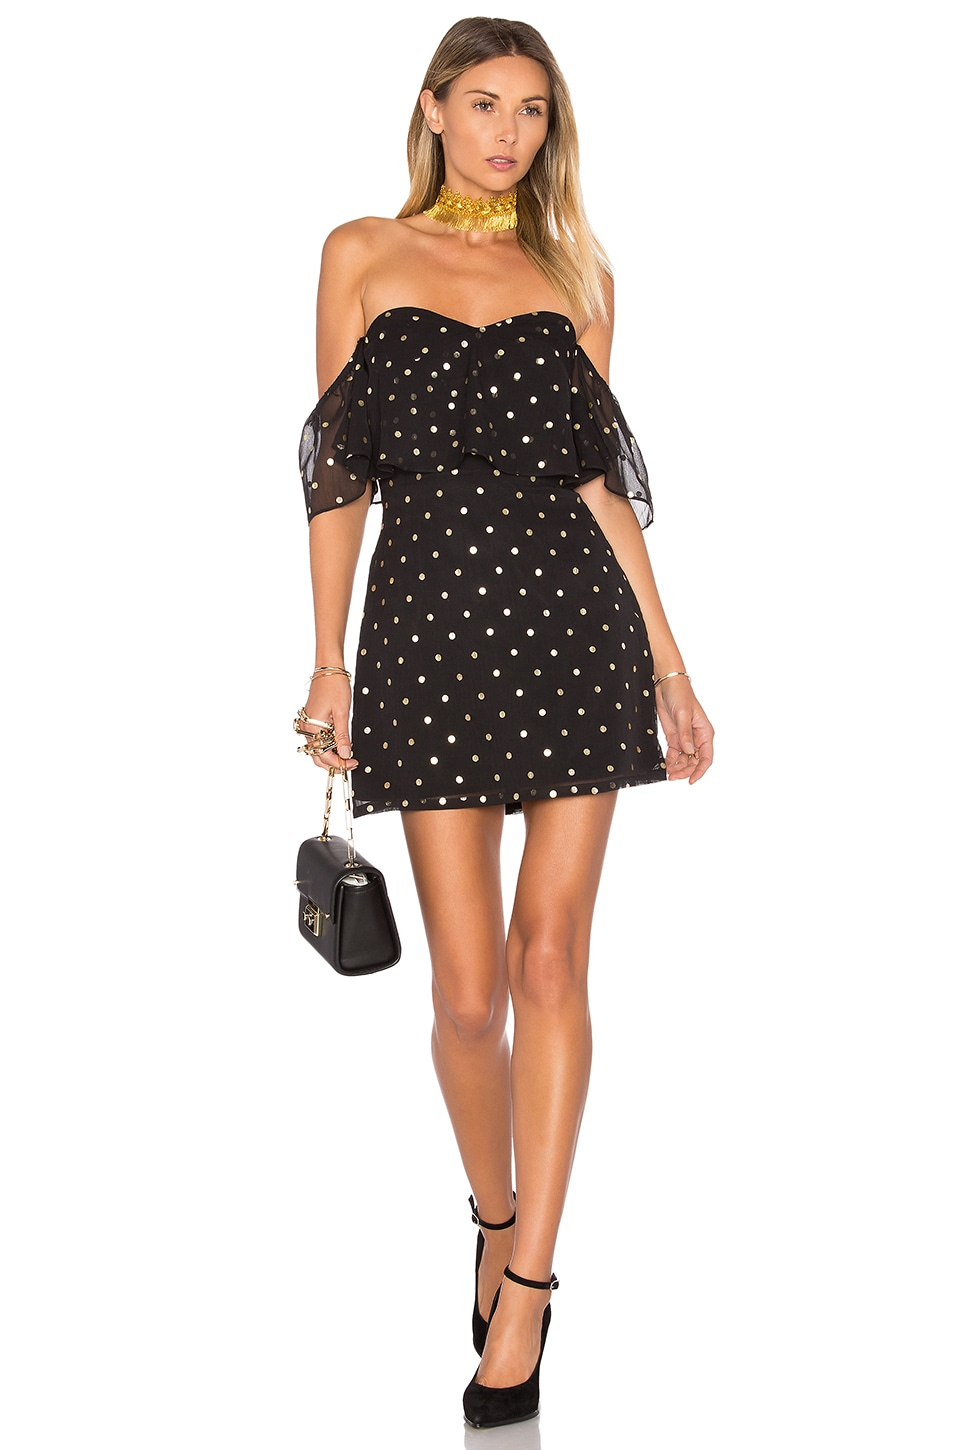 Lovers + Friends Lush Dress in Gold Dot